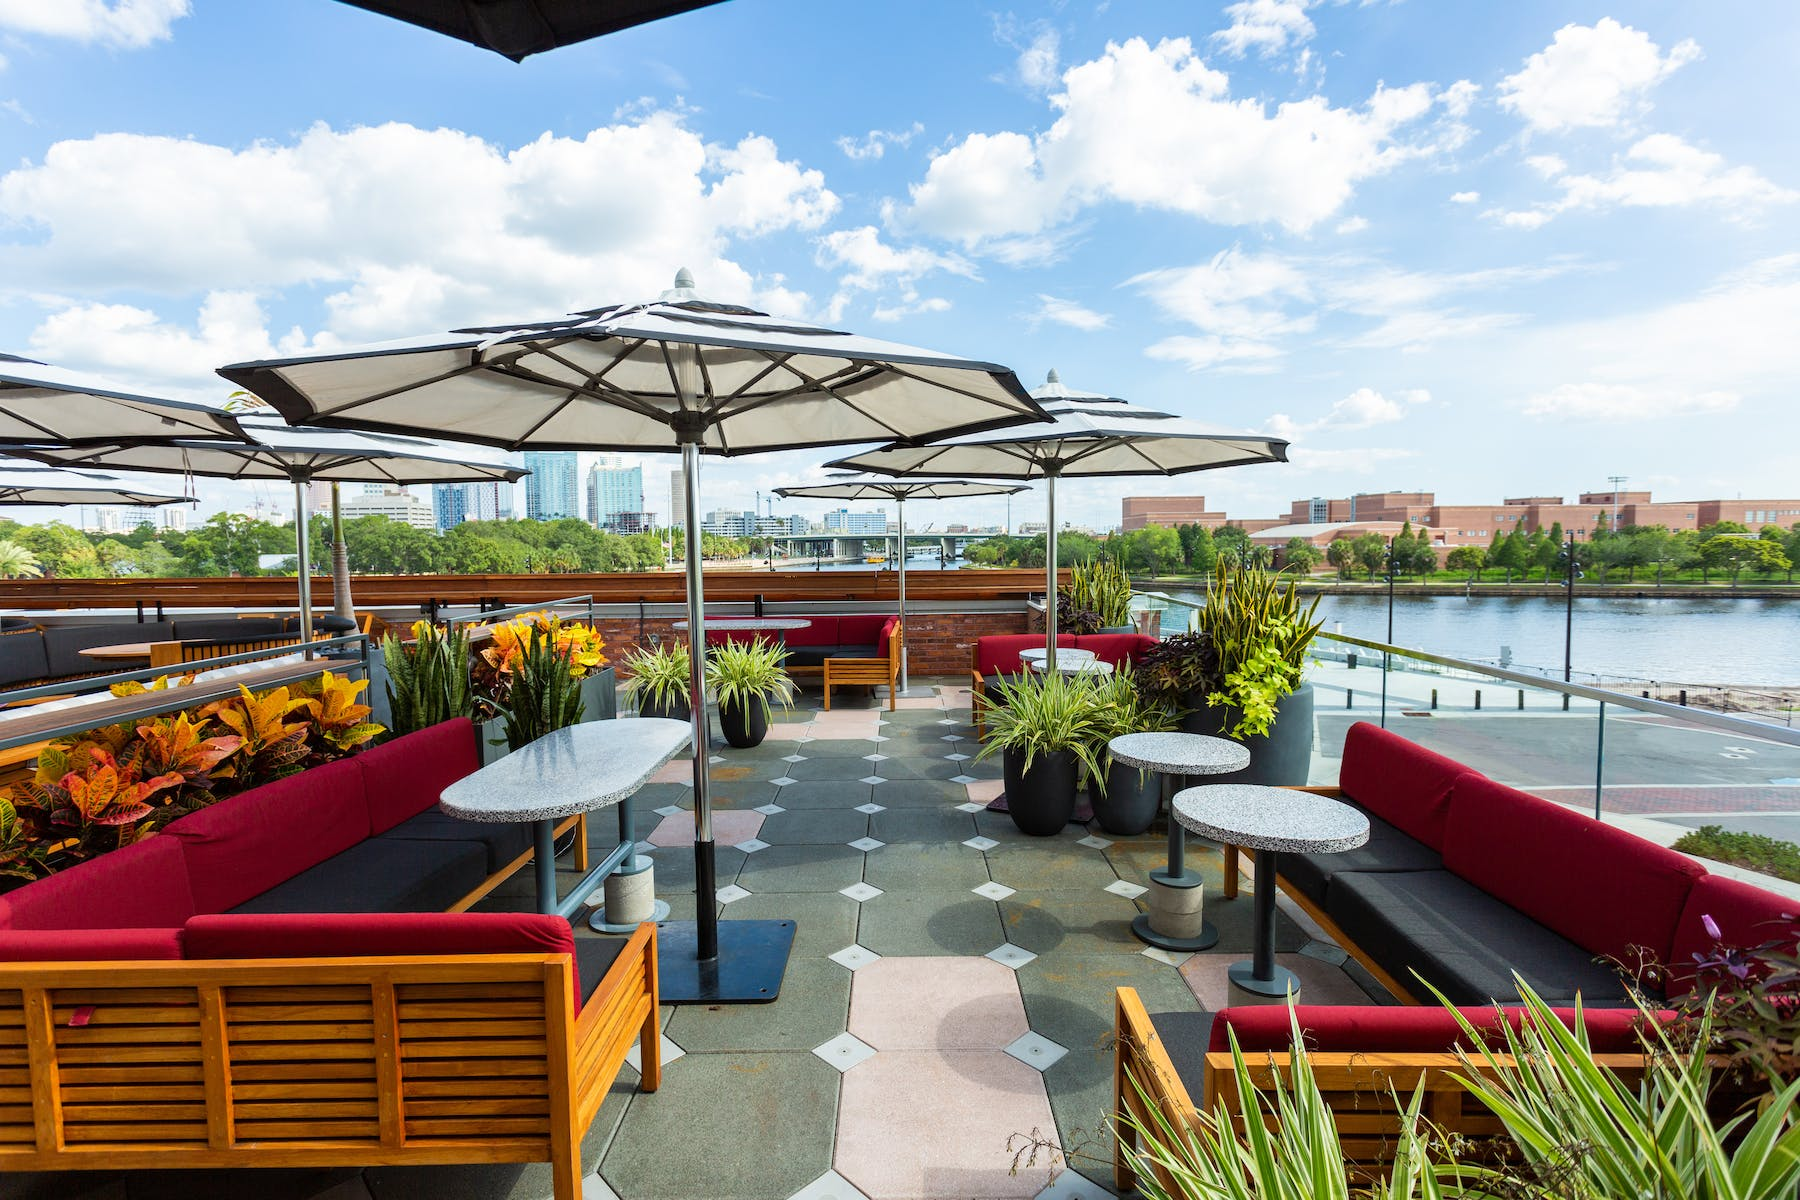 bar tables with booth seating under umbrellas in a corner overlooking the Hillsborugh River